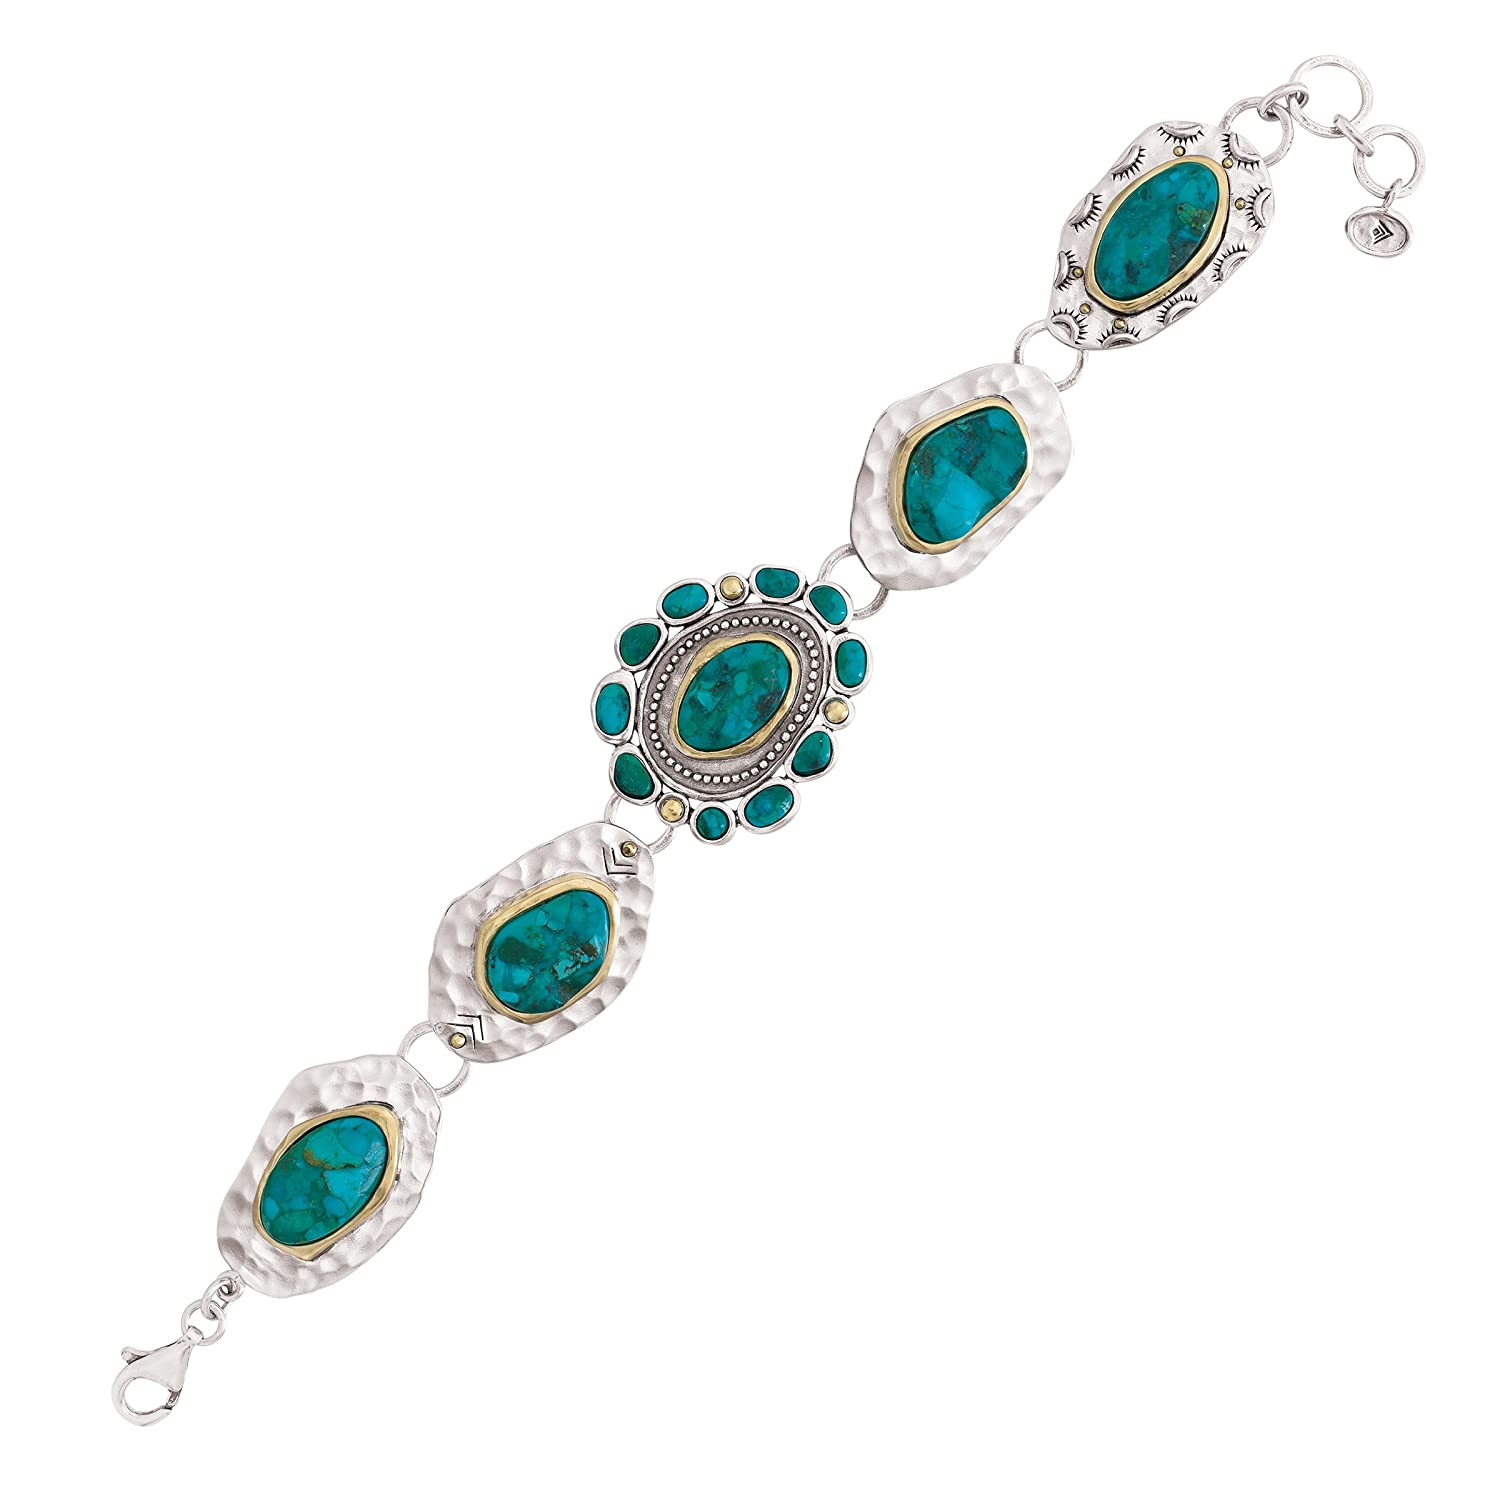 Silpada 'Santa Fe' Sterling Silver, Brass, and Turquoise Bracelet, 8""